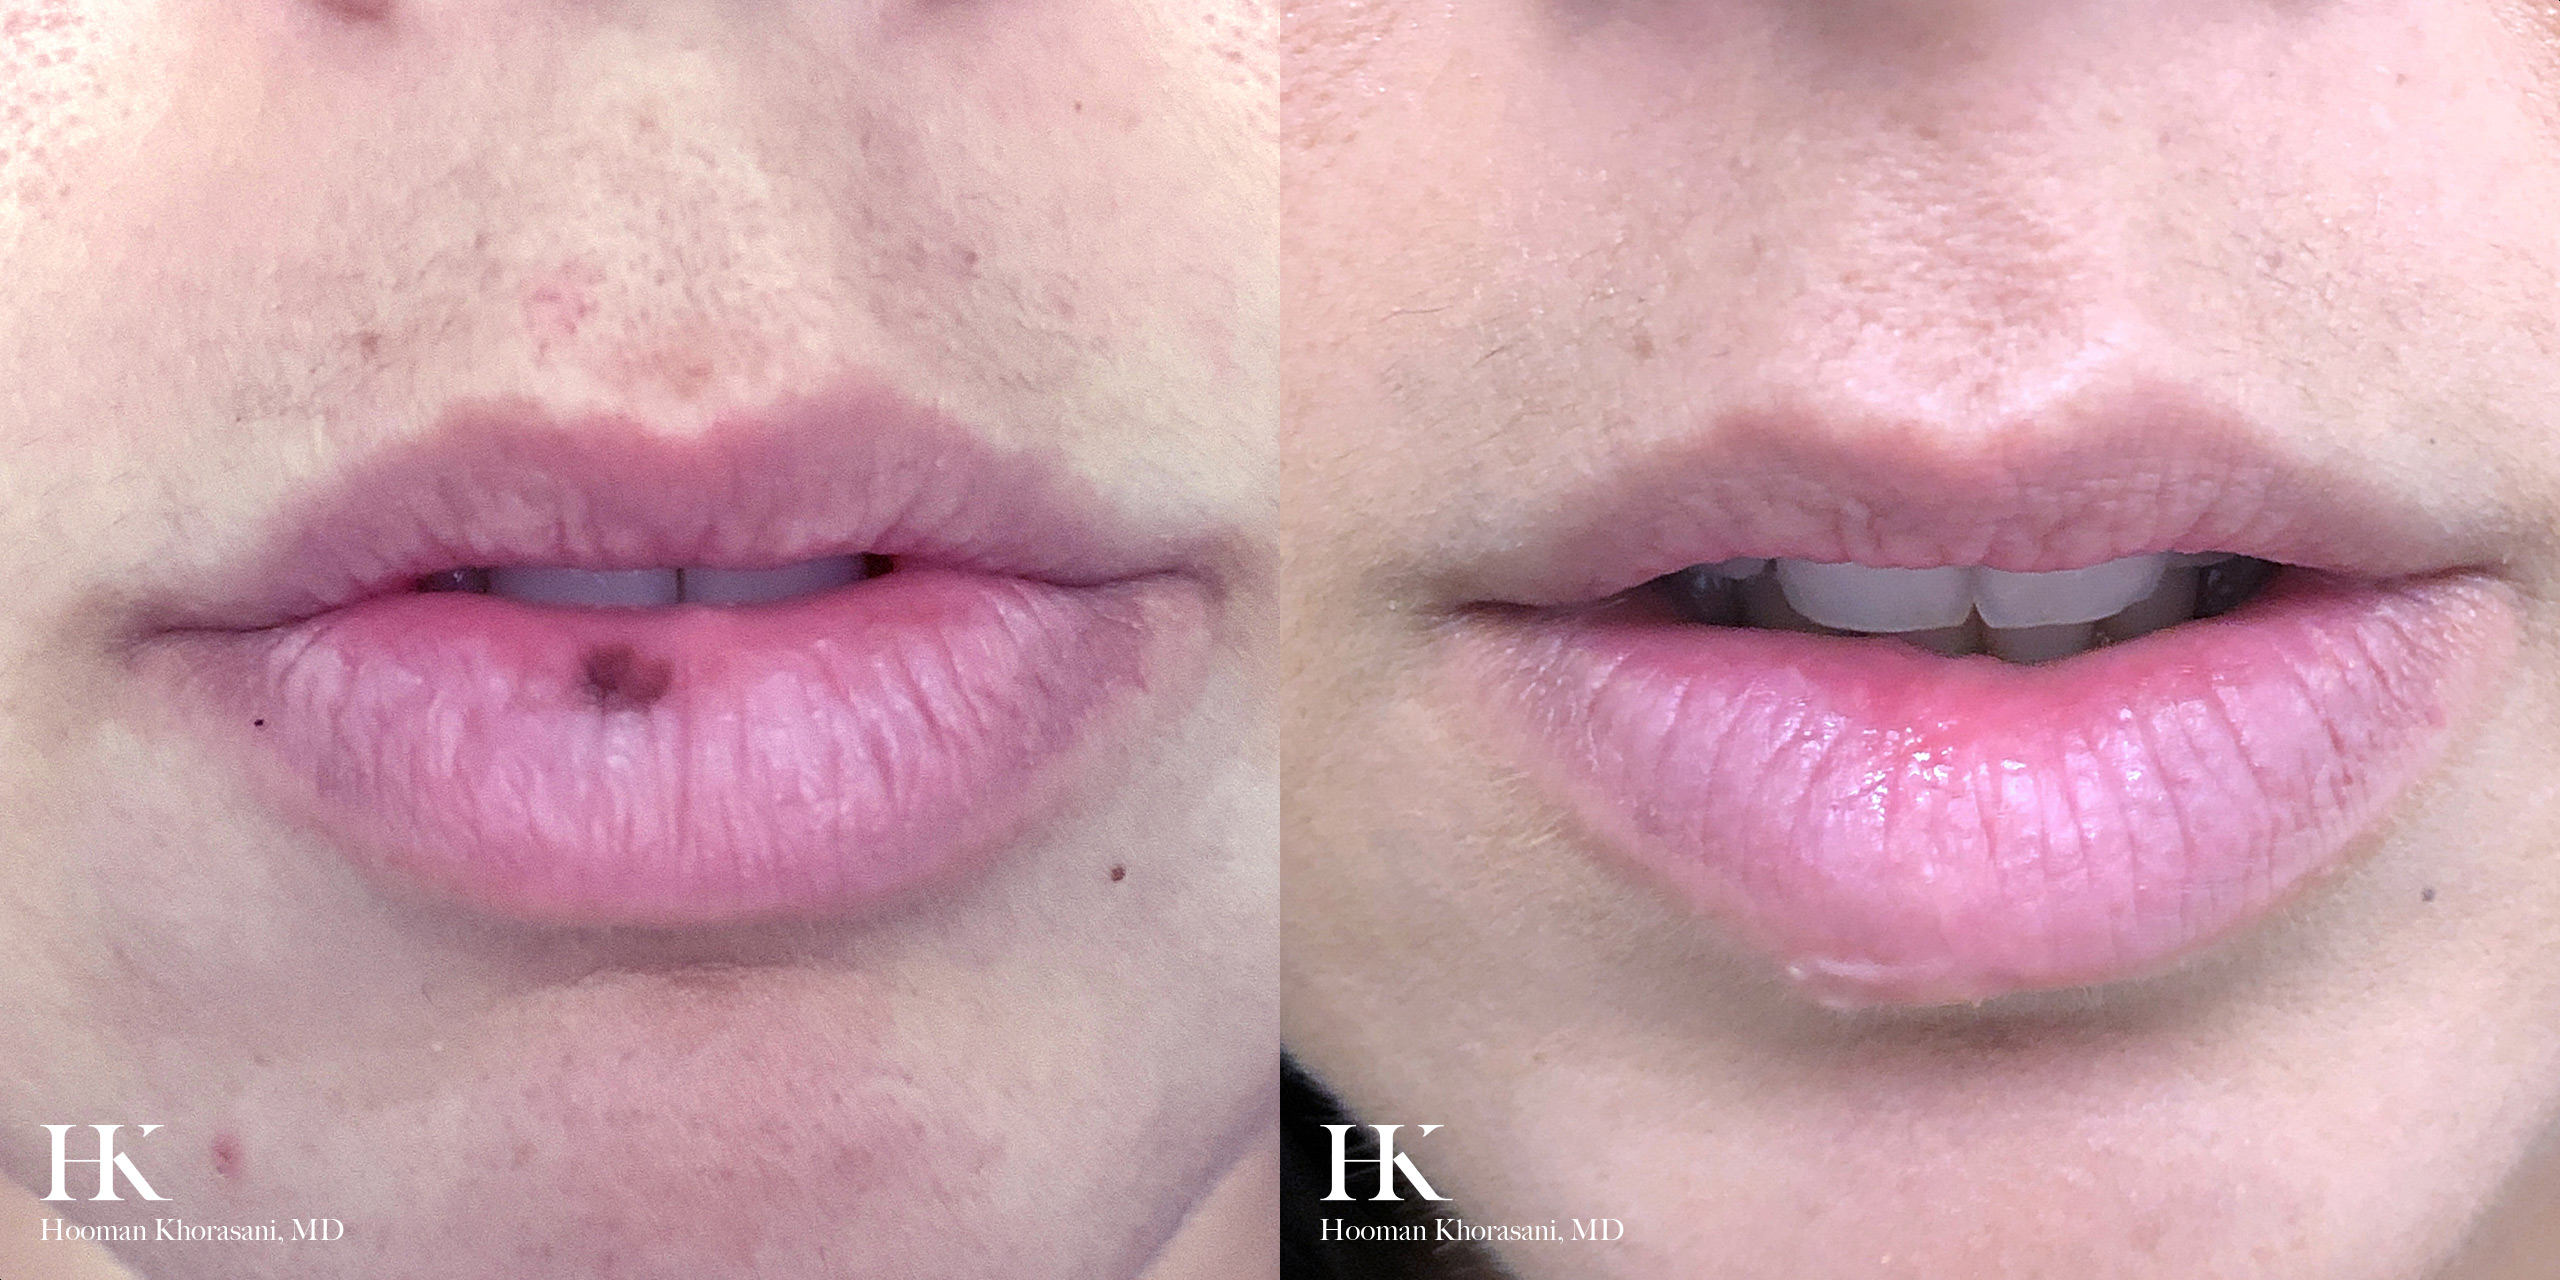 Cosmetic Mole Removal on the Lip - Dr. Hooman Khorasani